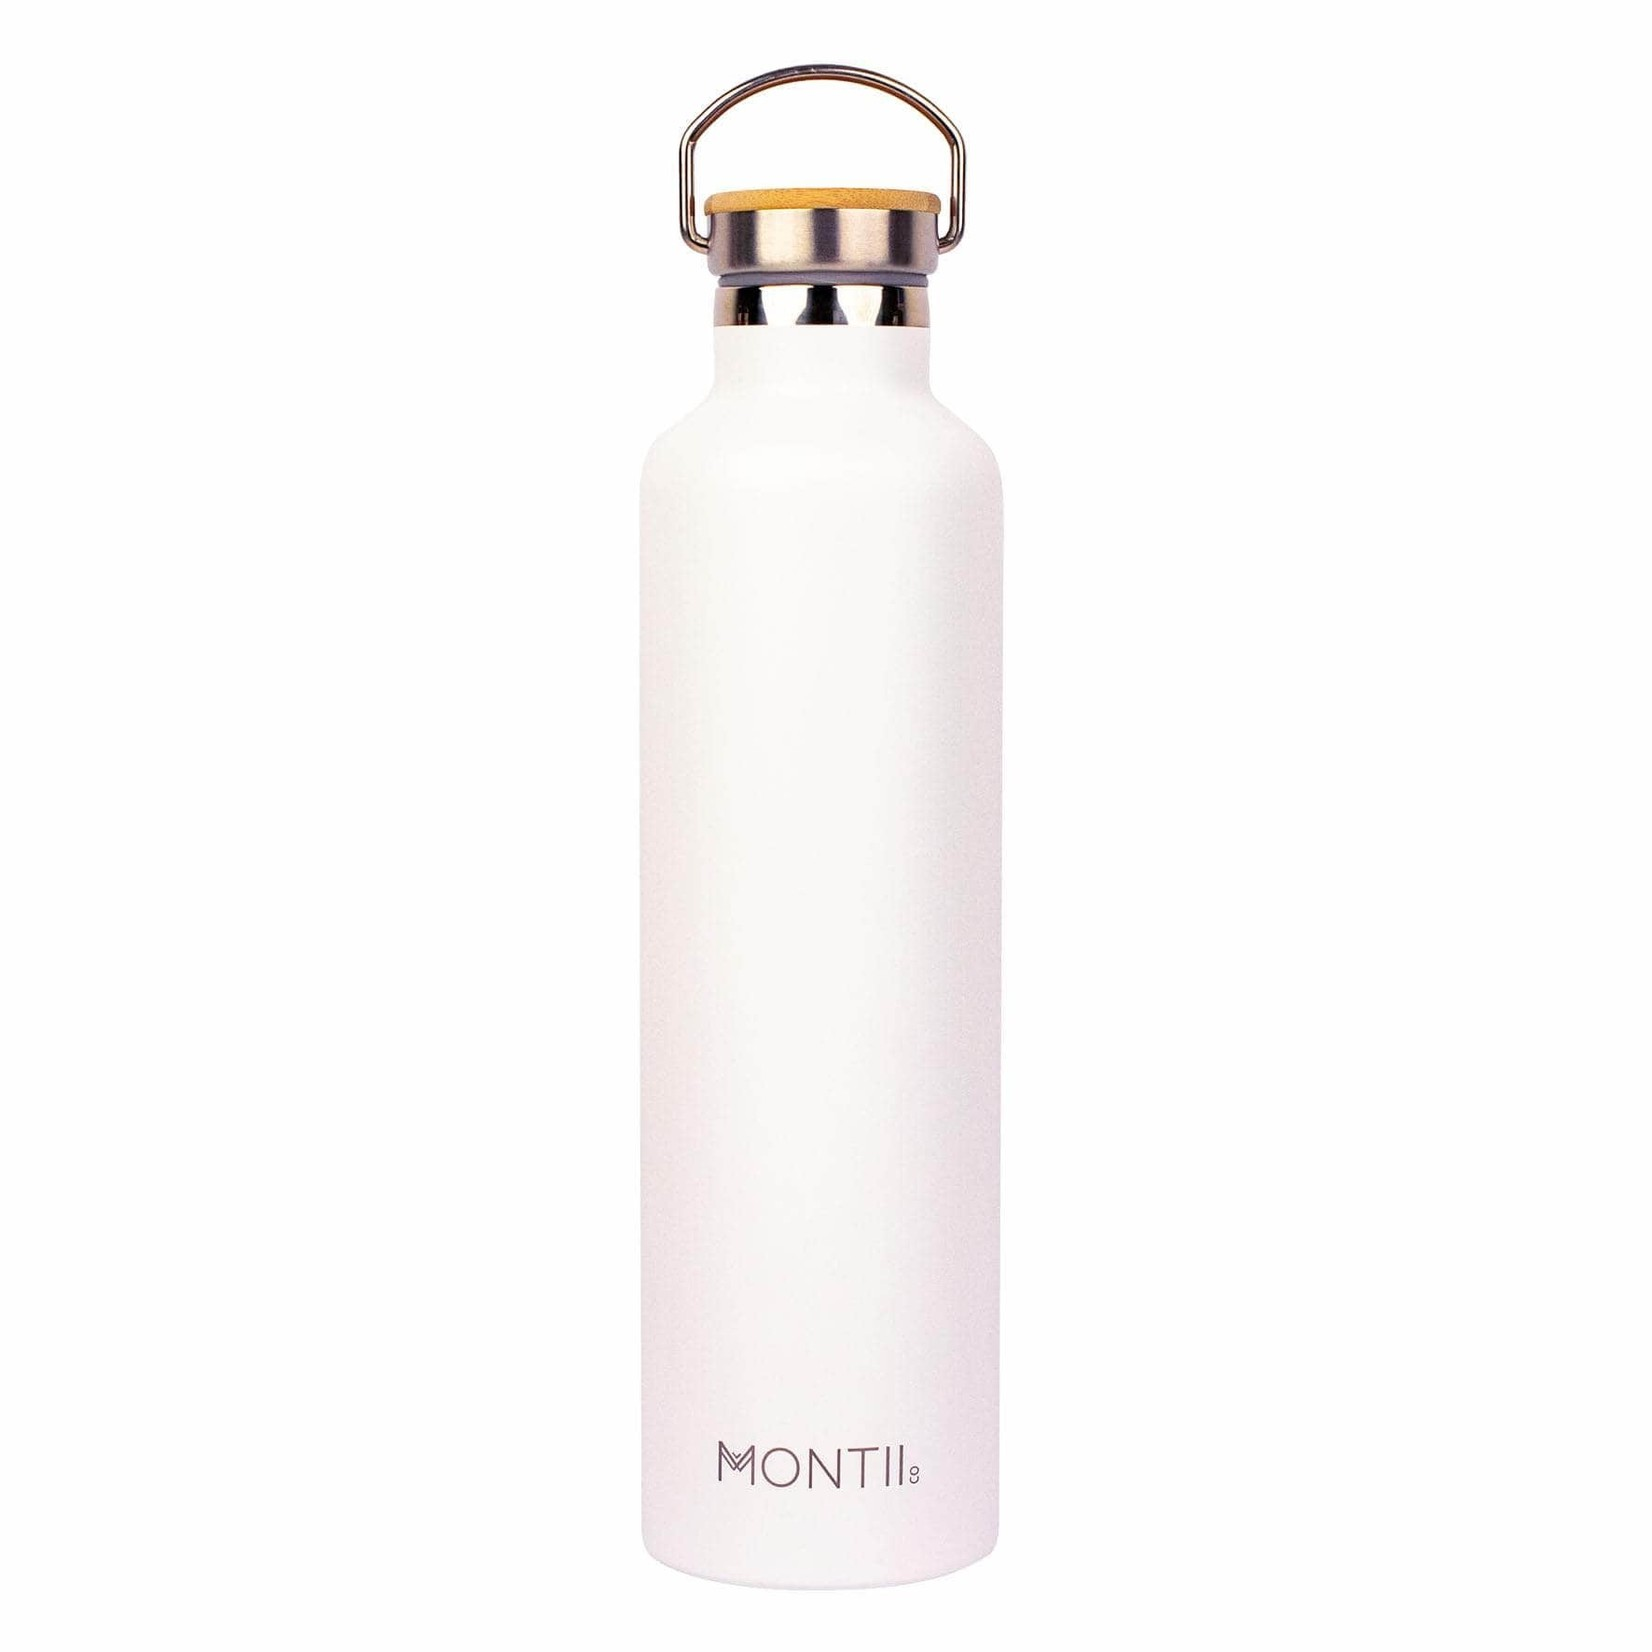 Eatwell-UK 1L Montii Insulated Water Bottle